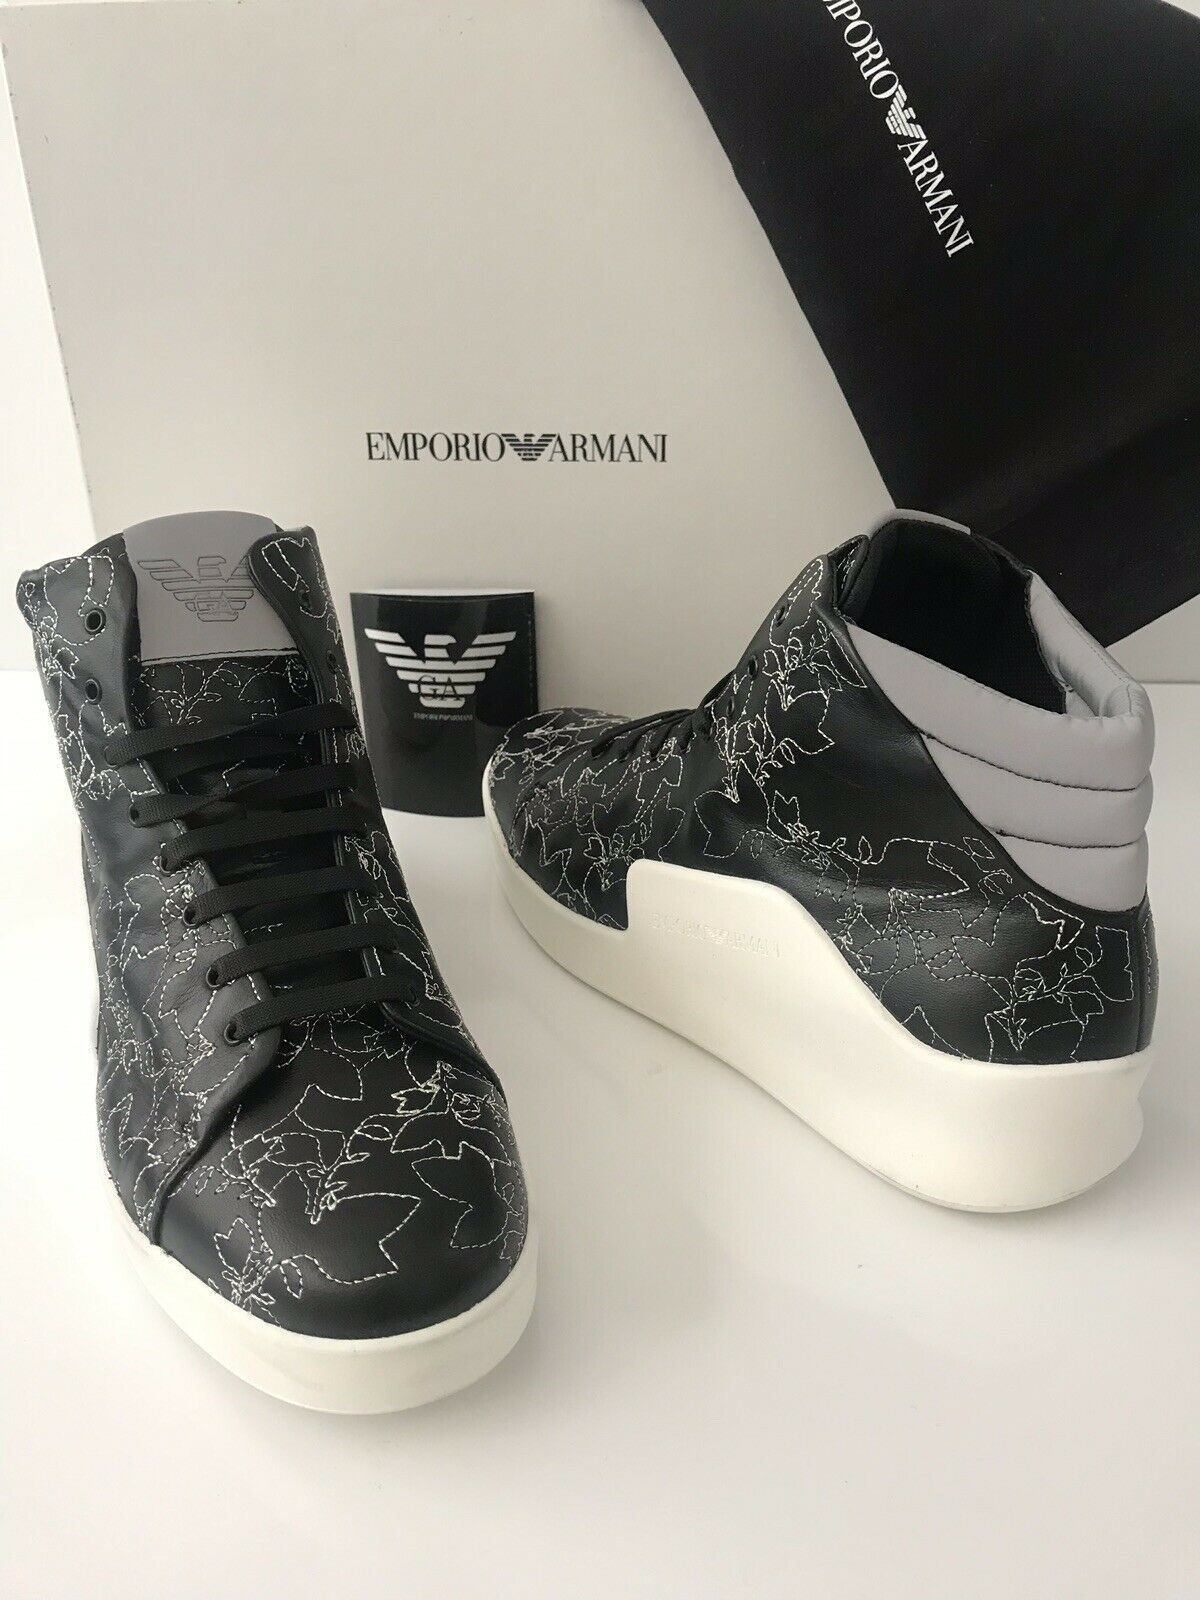 NIB $745 Emporio Armani Men's Floral Hi-Top Leather Sneakers Black 11 US /10 UK